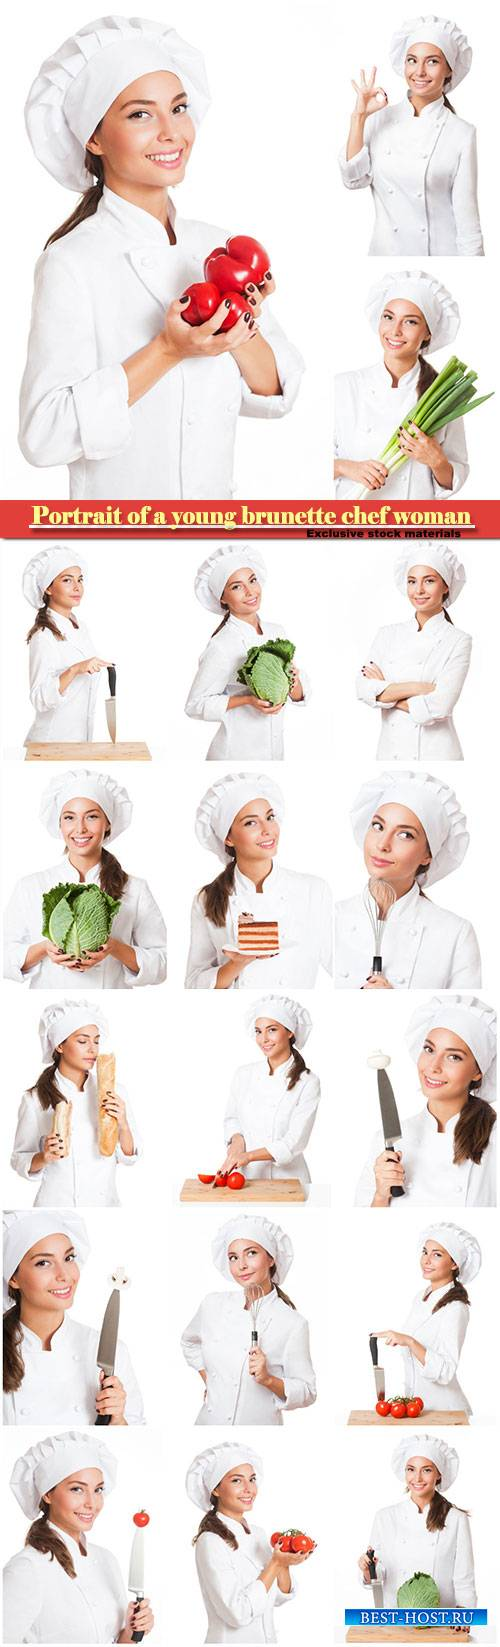 Portrait of a young brunette chef woman isolated on white background